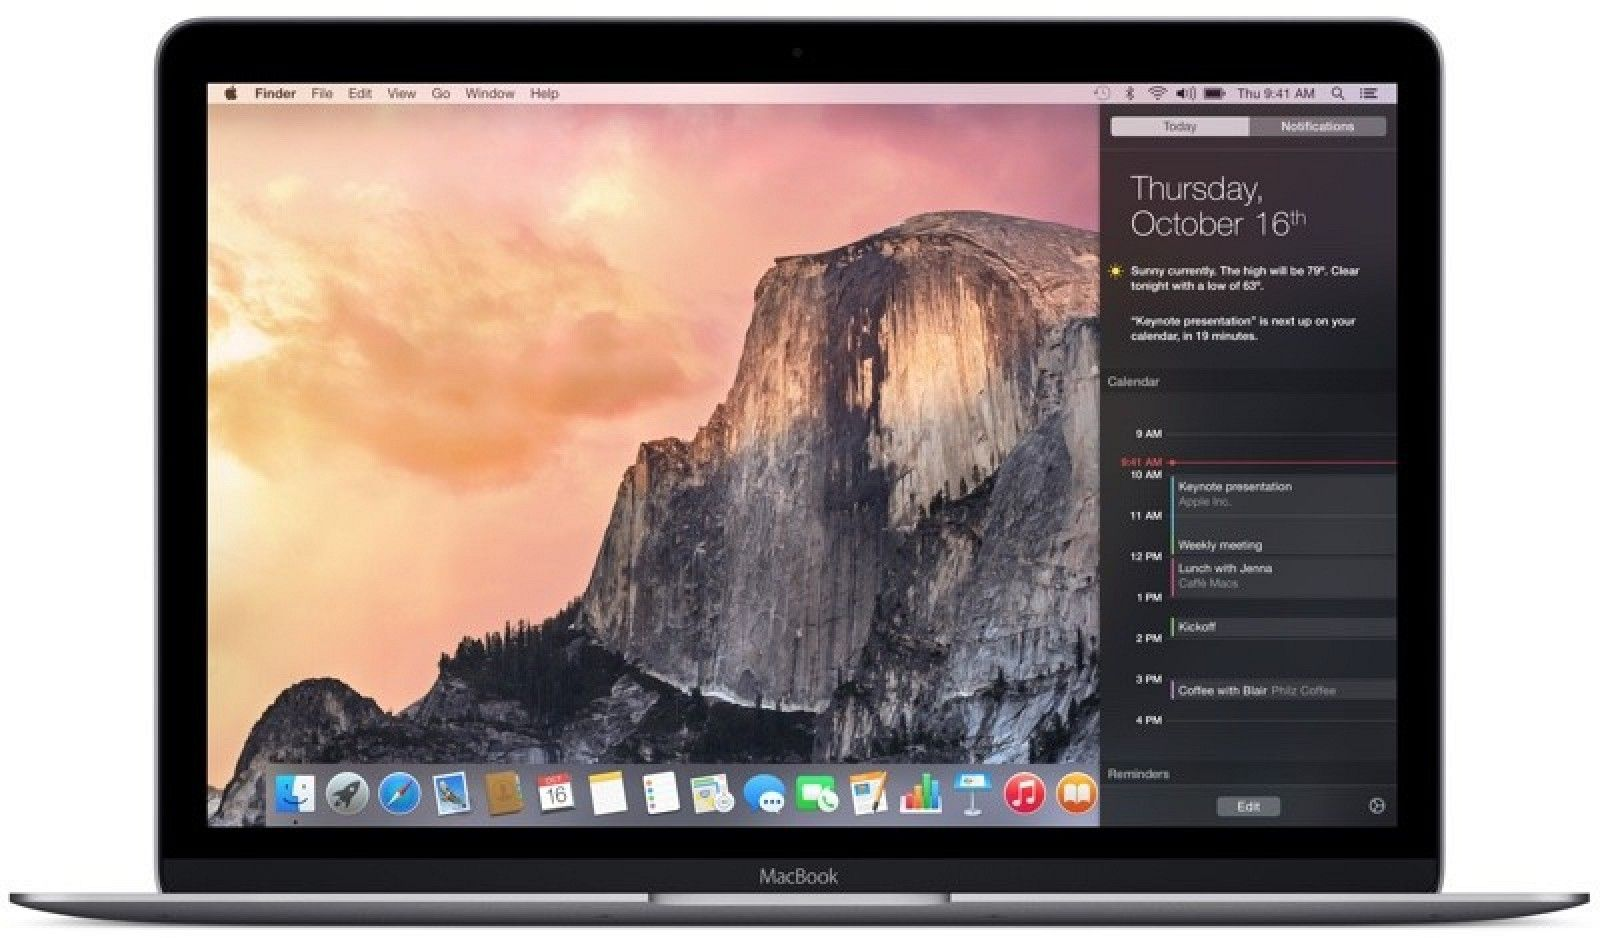 12Inch Retina MacBook Receives Mixed Reviews From Early